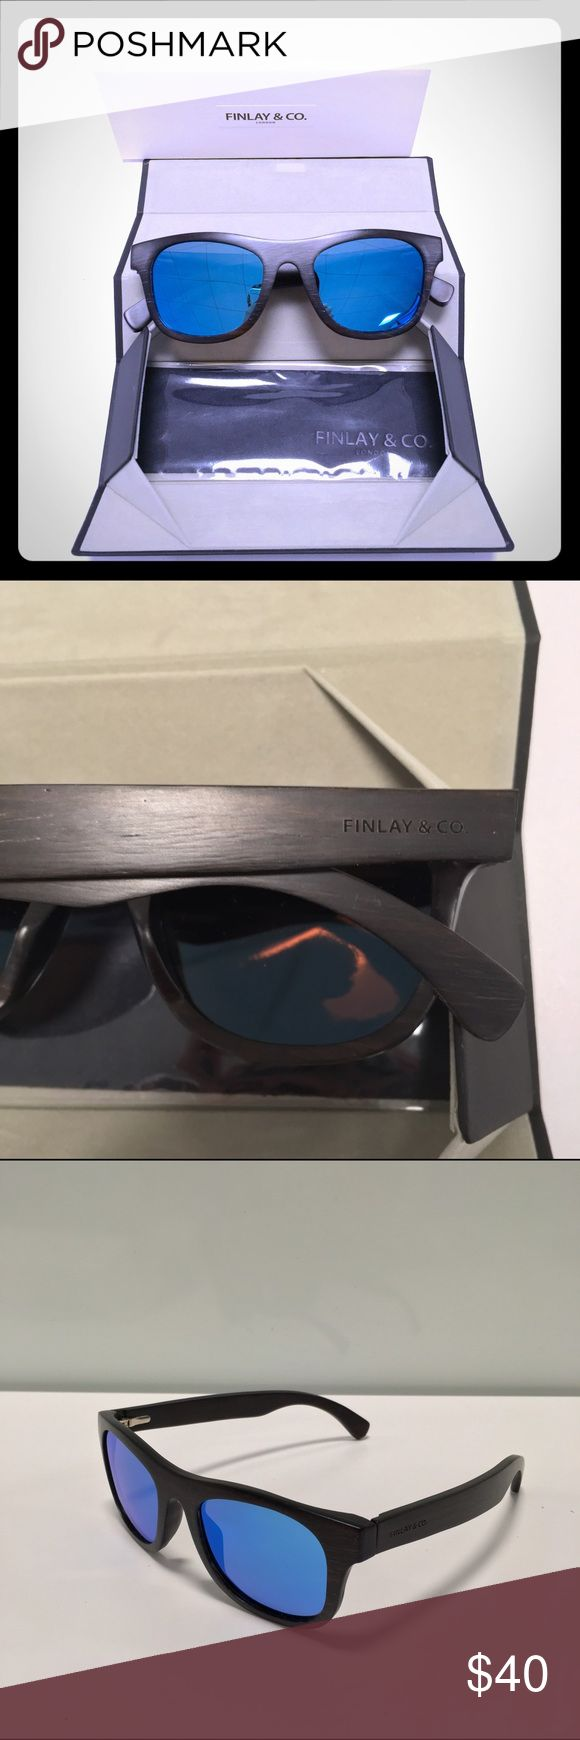 Finlay&Co Wooden Mirrored Wayfarer Sunglasses,50mm BRAND NEW. authentic women's Finlay & Co.'s of London 'Ledbury' wayferer sunglasses are handcrafted of brown lightweight ebony wood. Never before worn or used. Originally sold at Barney's New York and Blomingdales.  original retail price: $240 + tax color: wood/blue mirror.  Logo-etched temples. Round shape. Nose guards. Blue mirrored polarized lenses. 100% UVA/UVB protection. 50mm eye size. 22mm bridge size. 145mm temple size. Includes…